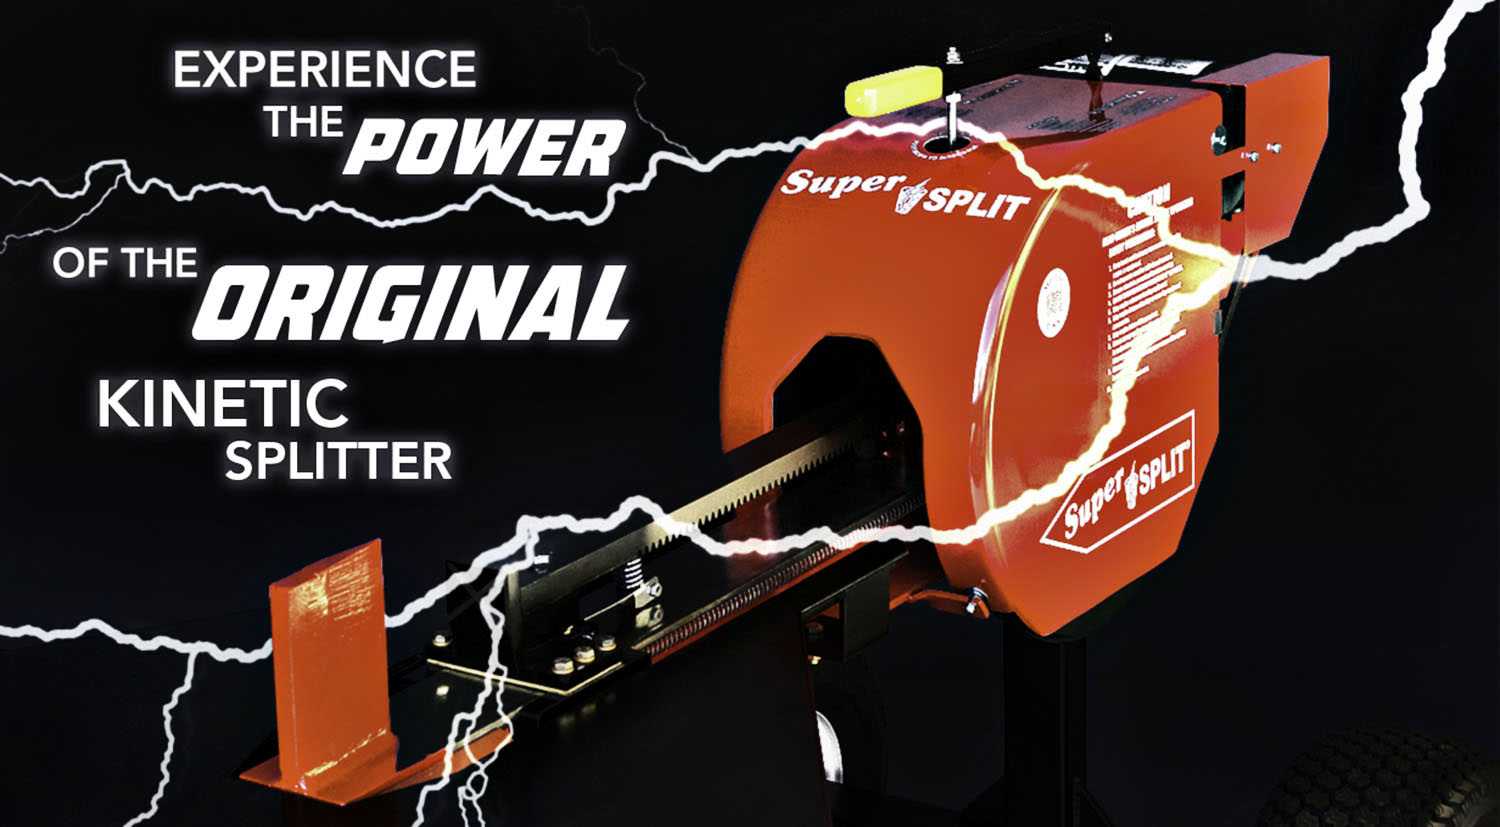 Experience the Power of the Original Kinetic Splitter